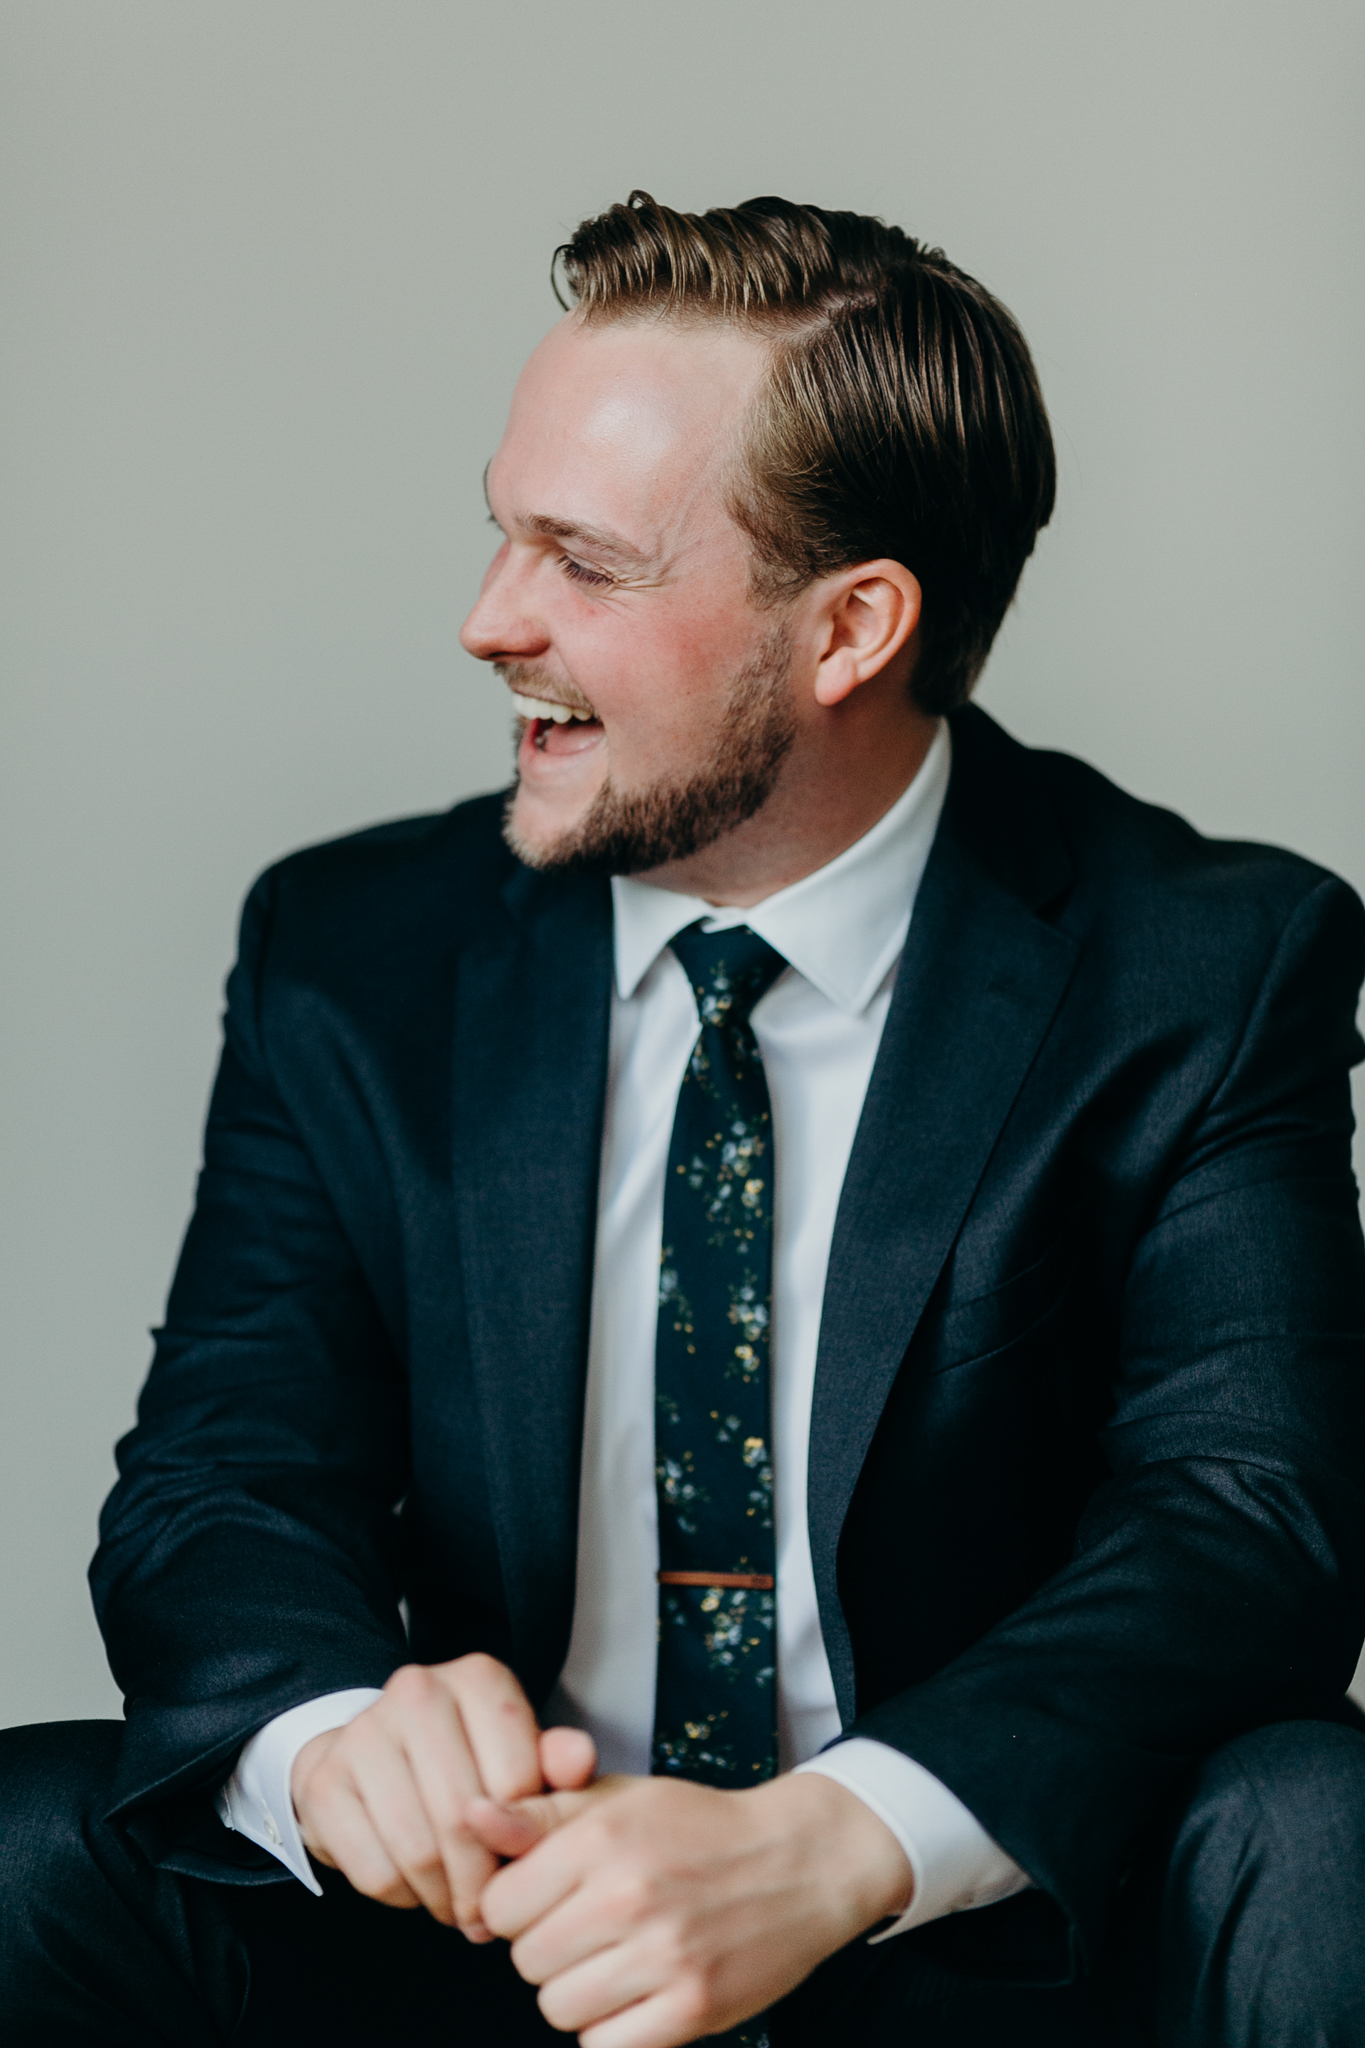 Candid portrait of groom in suit against white wall laughing